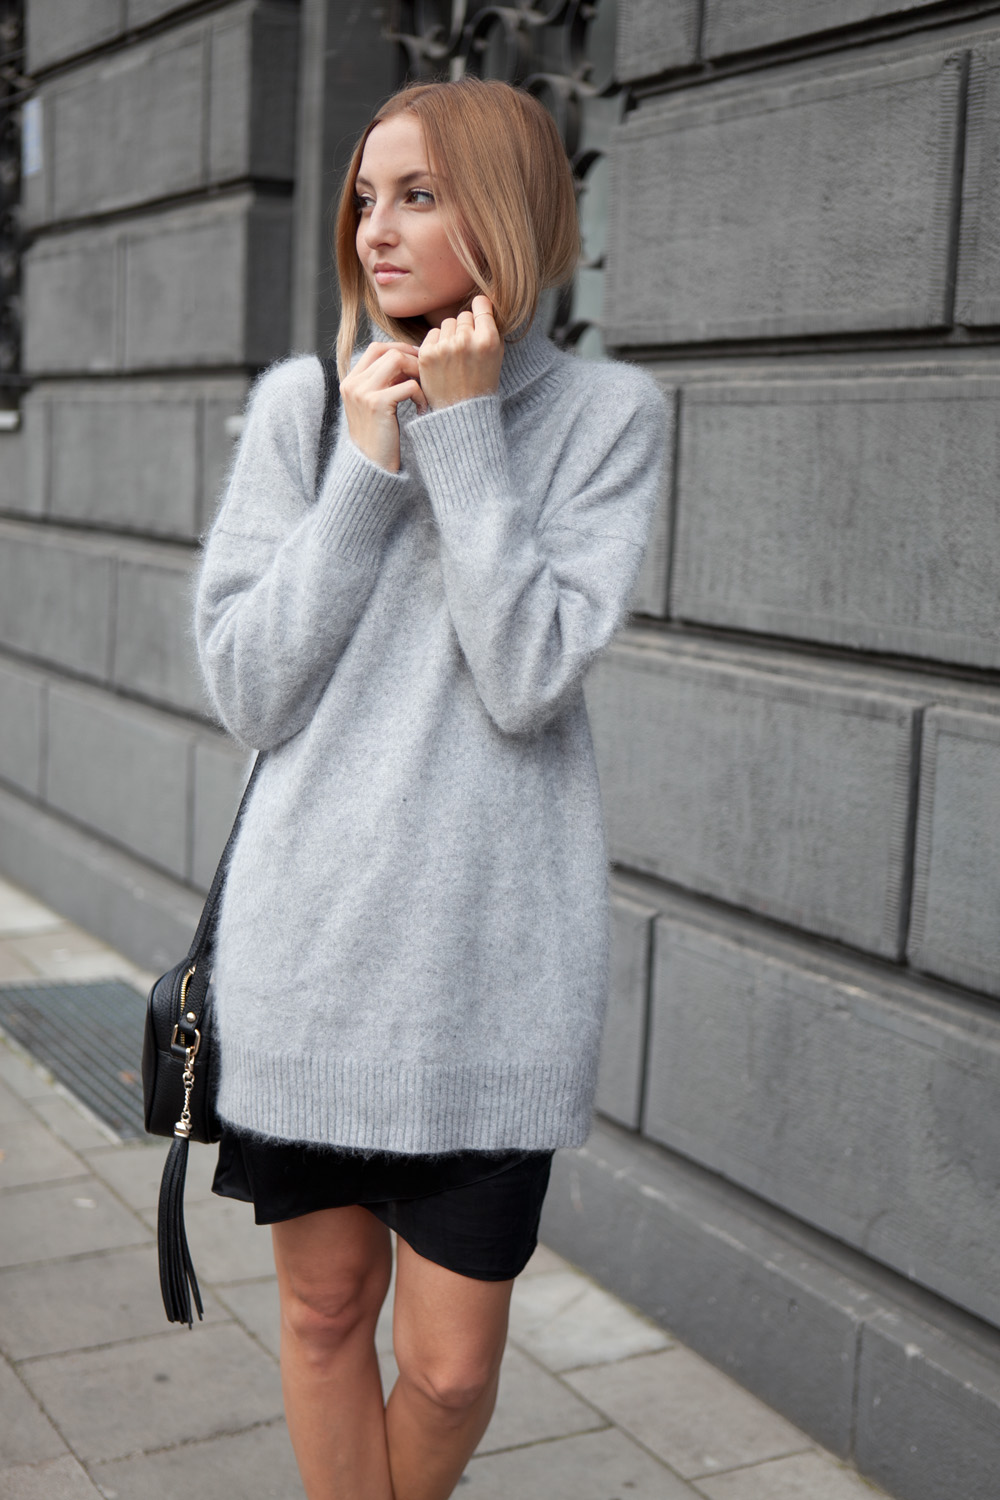 Jess A. is wearing a grey fluffy long sweater from Jessica Buurman. af5b00281